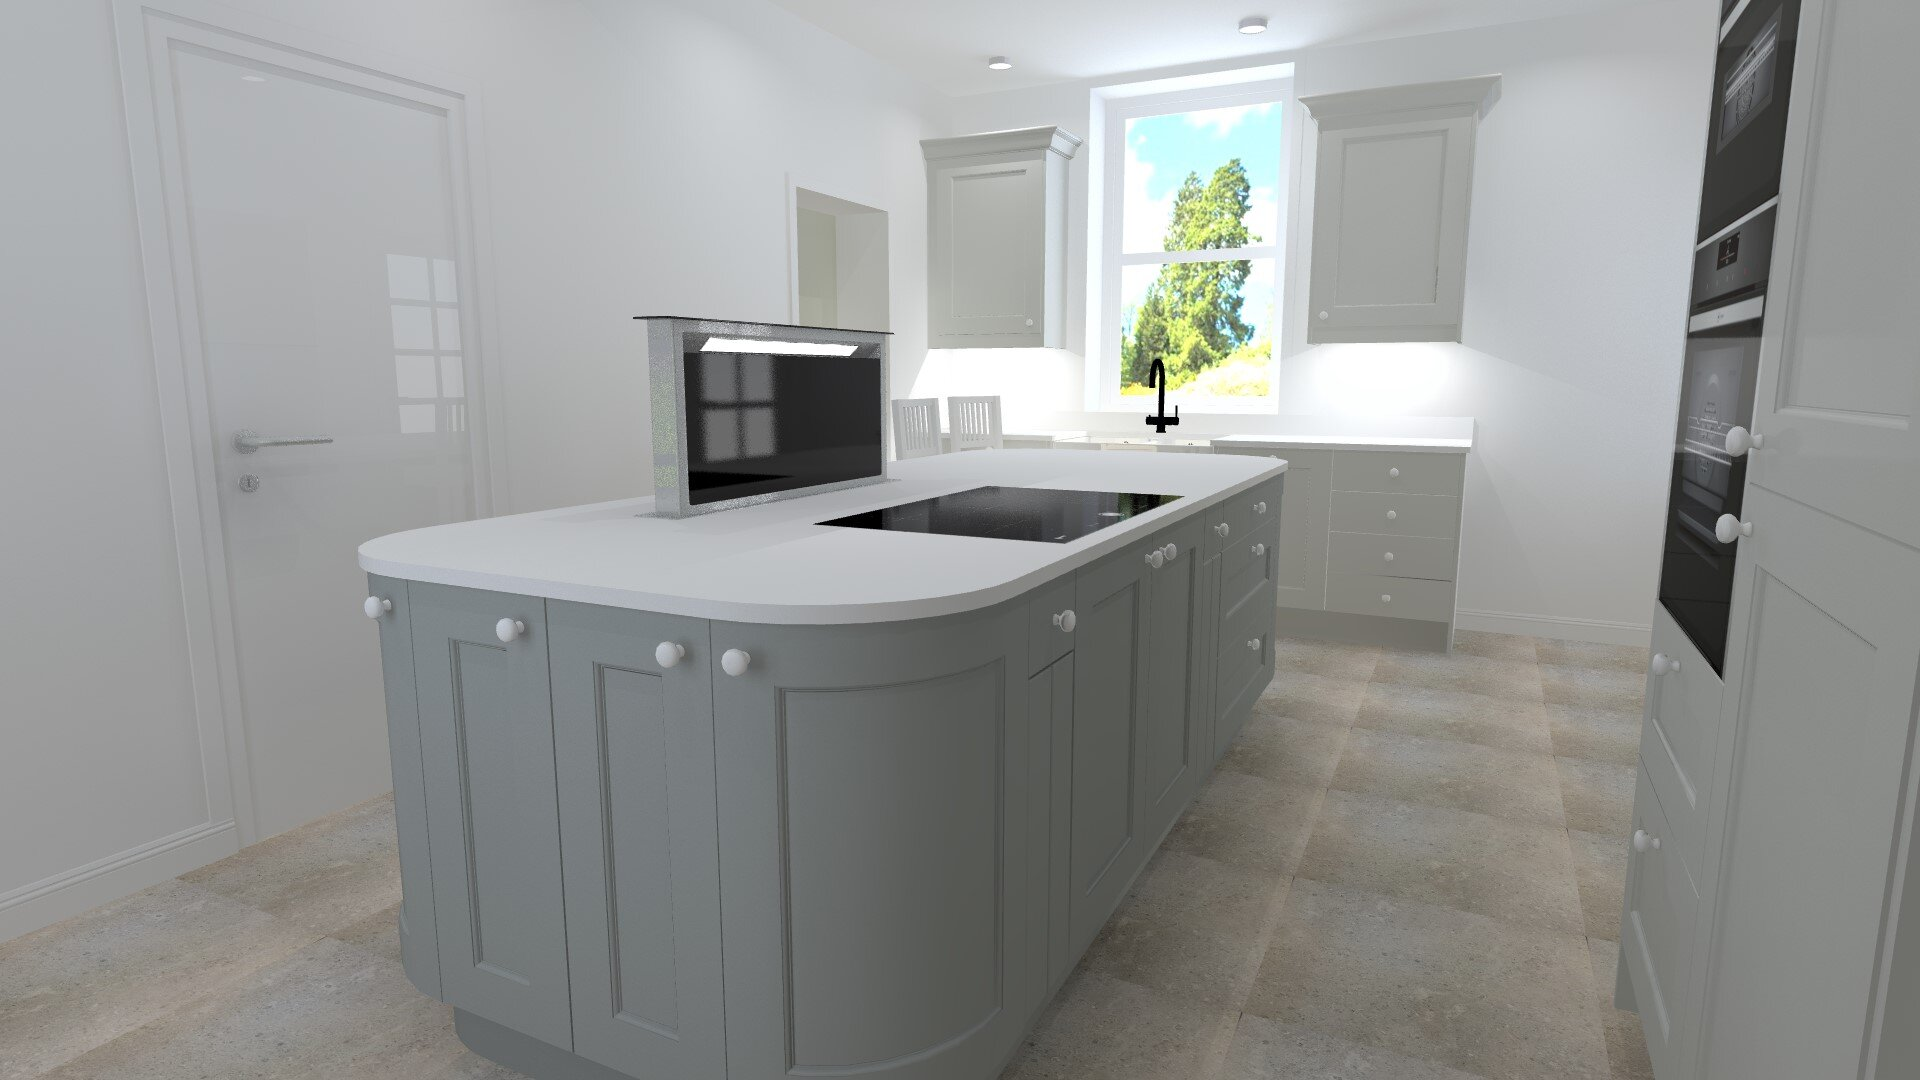 Mr and Mrs Reed Revised Kitchen Perspective 2.jpg